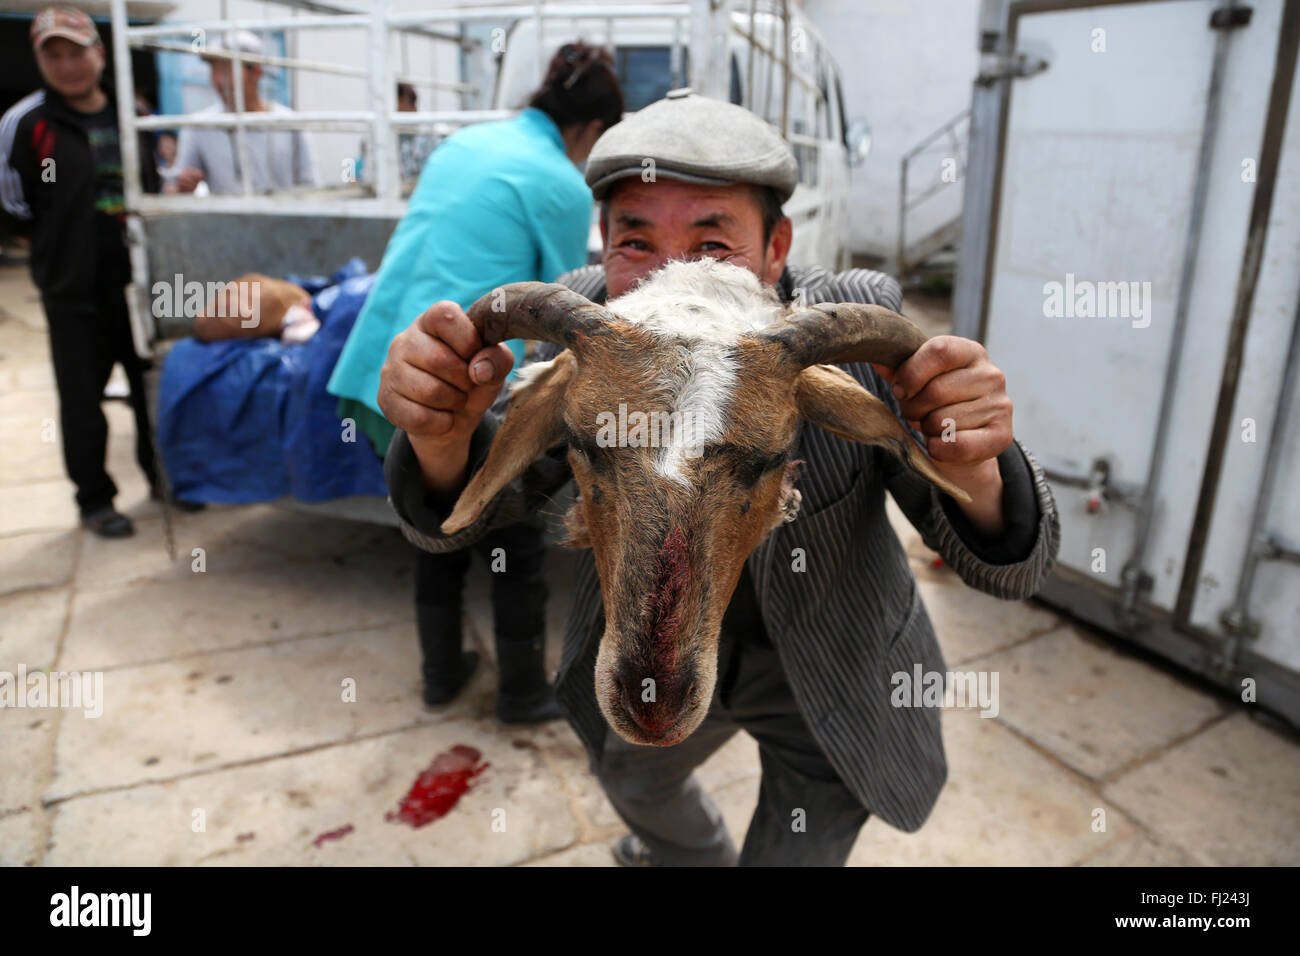 Man showing dead goat face beheaded in the moron market, Mongolia - Stock Image